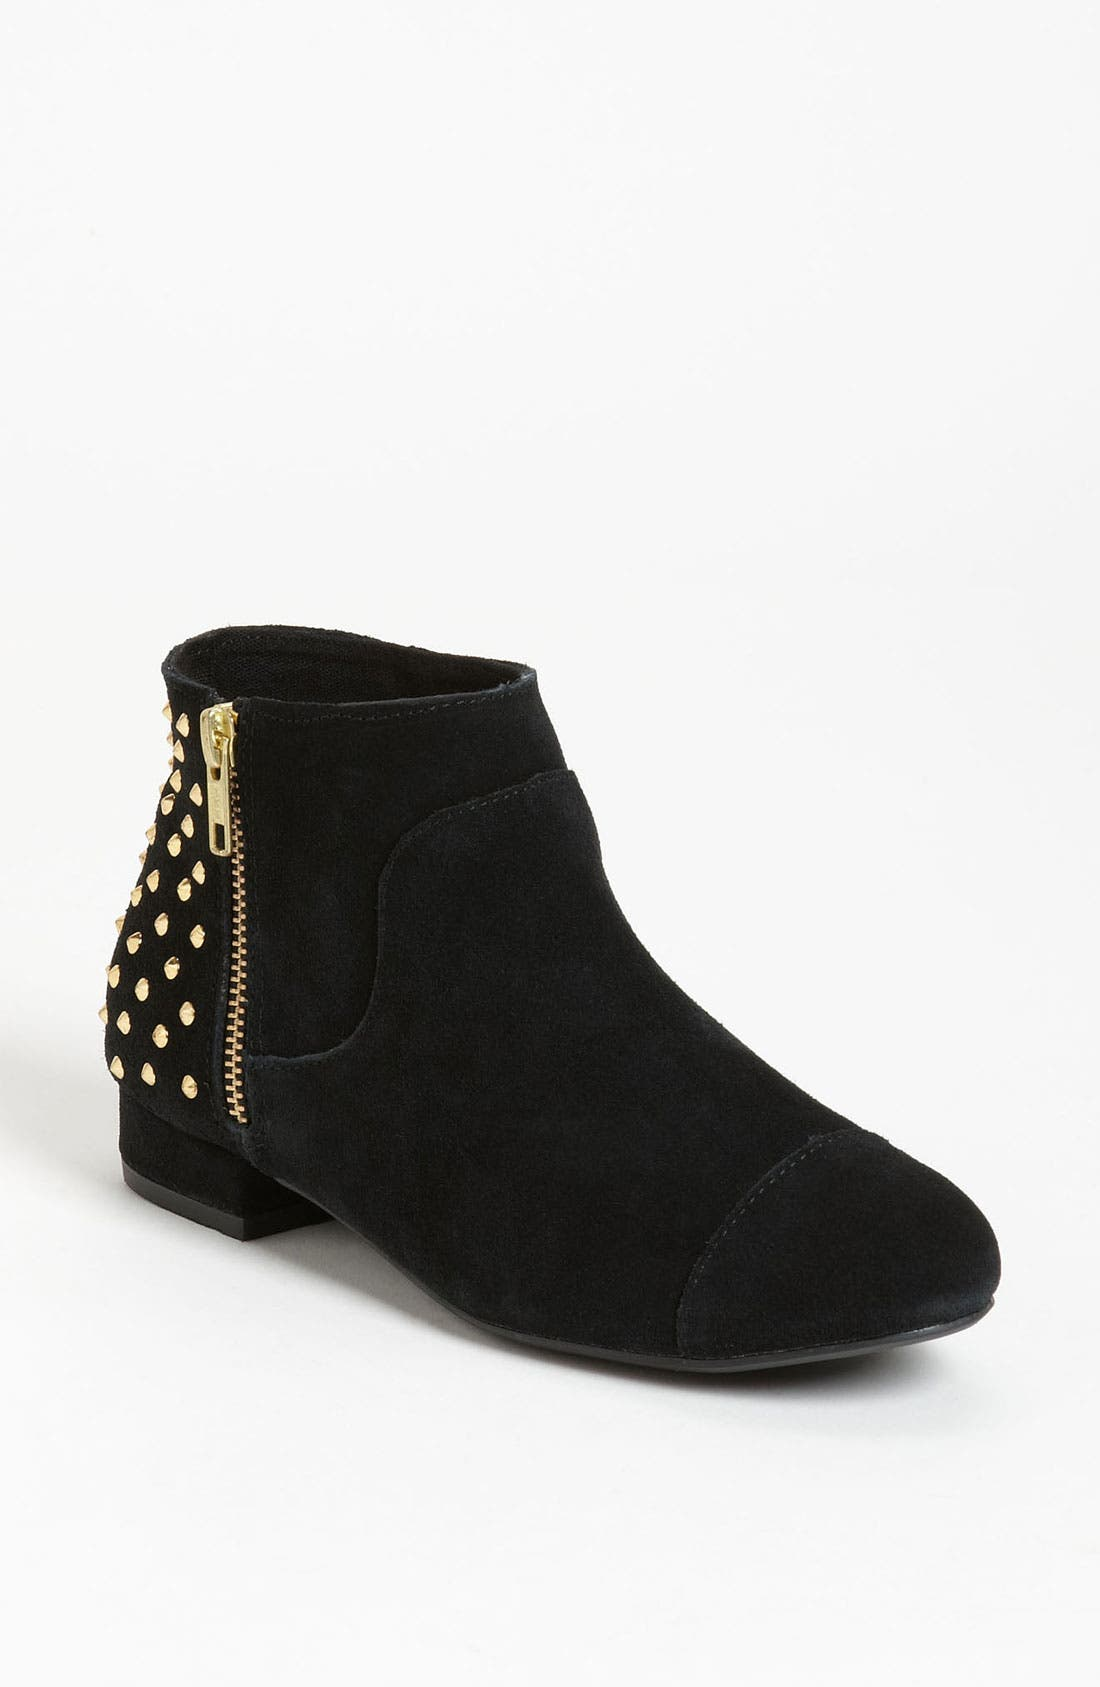 Main Image - Topshop 'Millicent' Boot